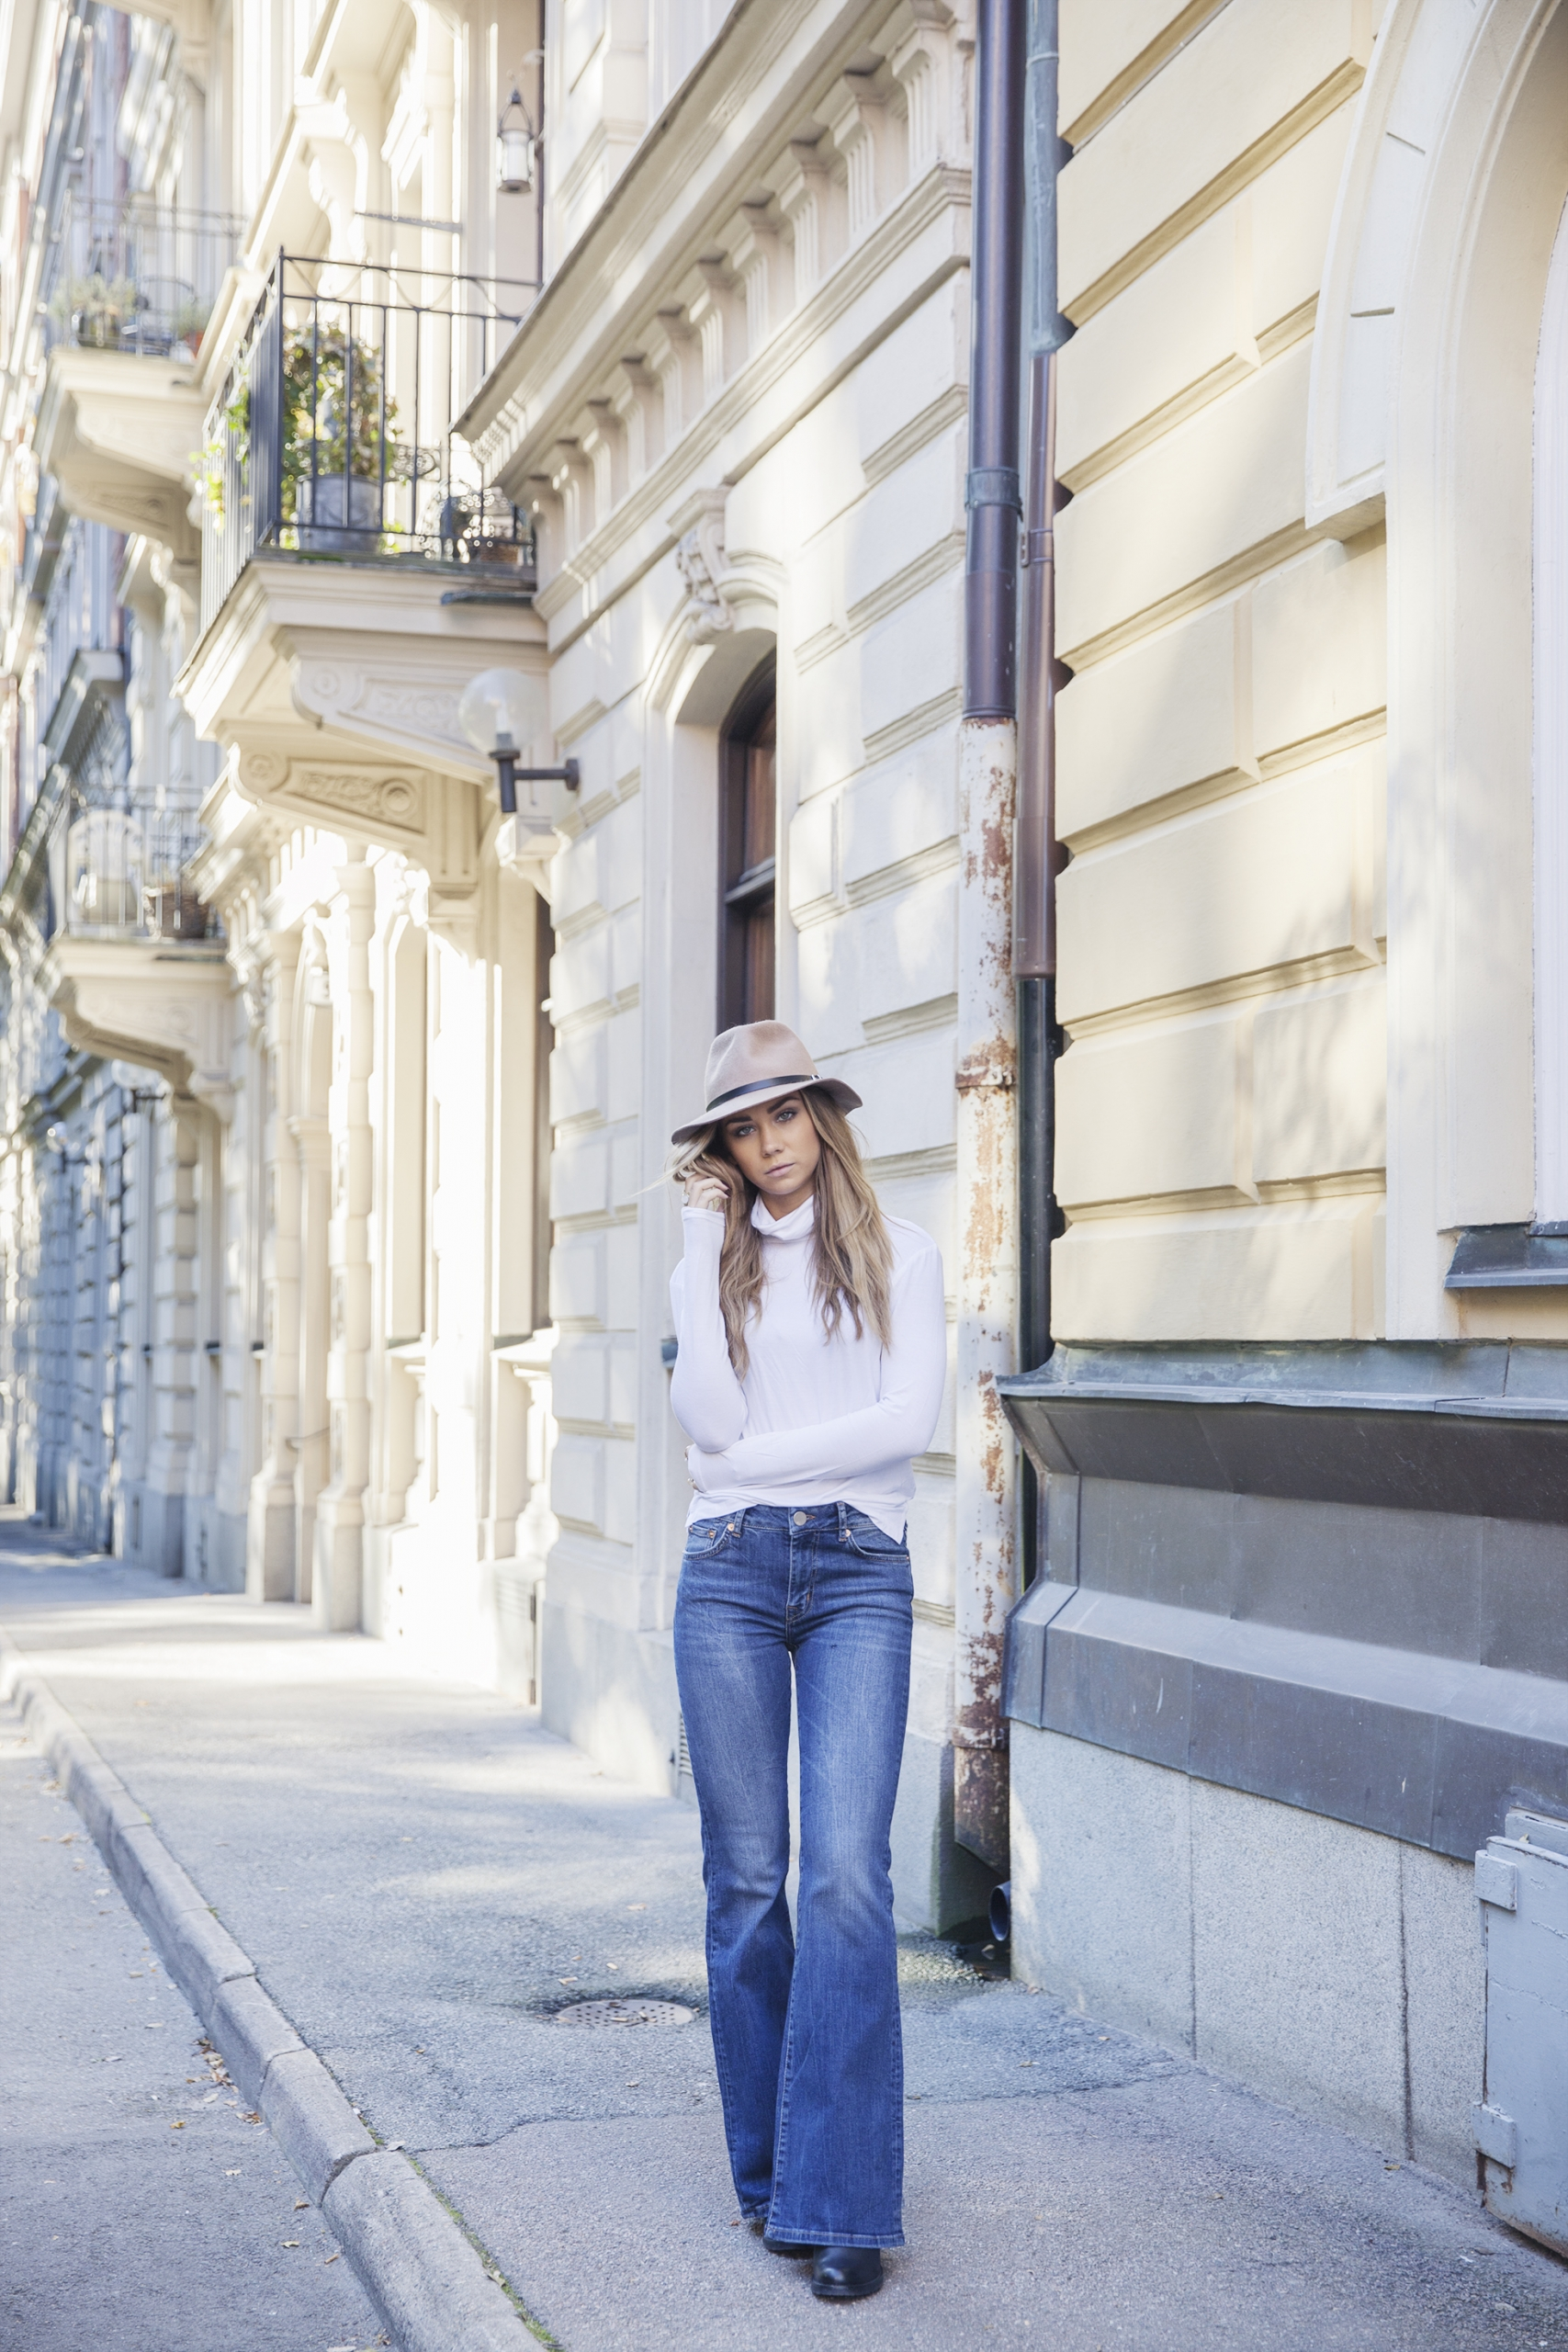 Flared jeans are the ultimate 70s item. Wear yours with a turtle neck top and fedora to recreate Lisa Olsson's look. Jeans/Top: Lager157.